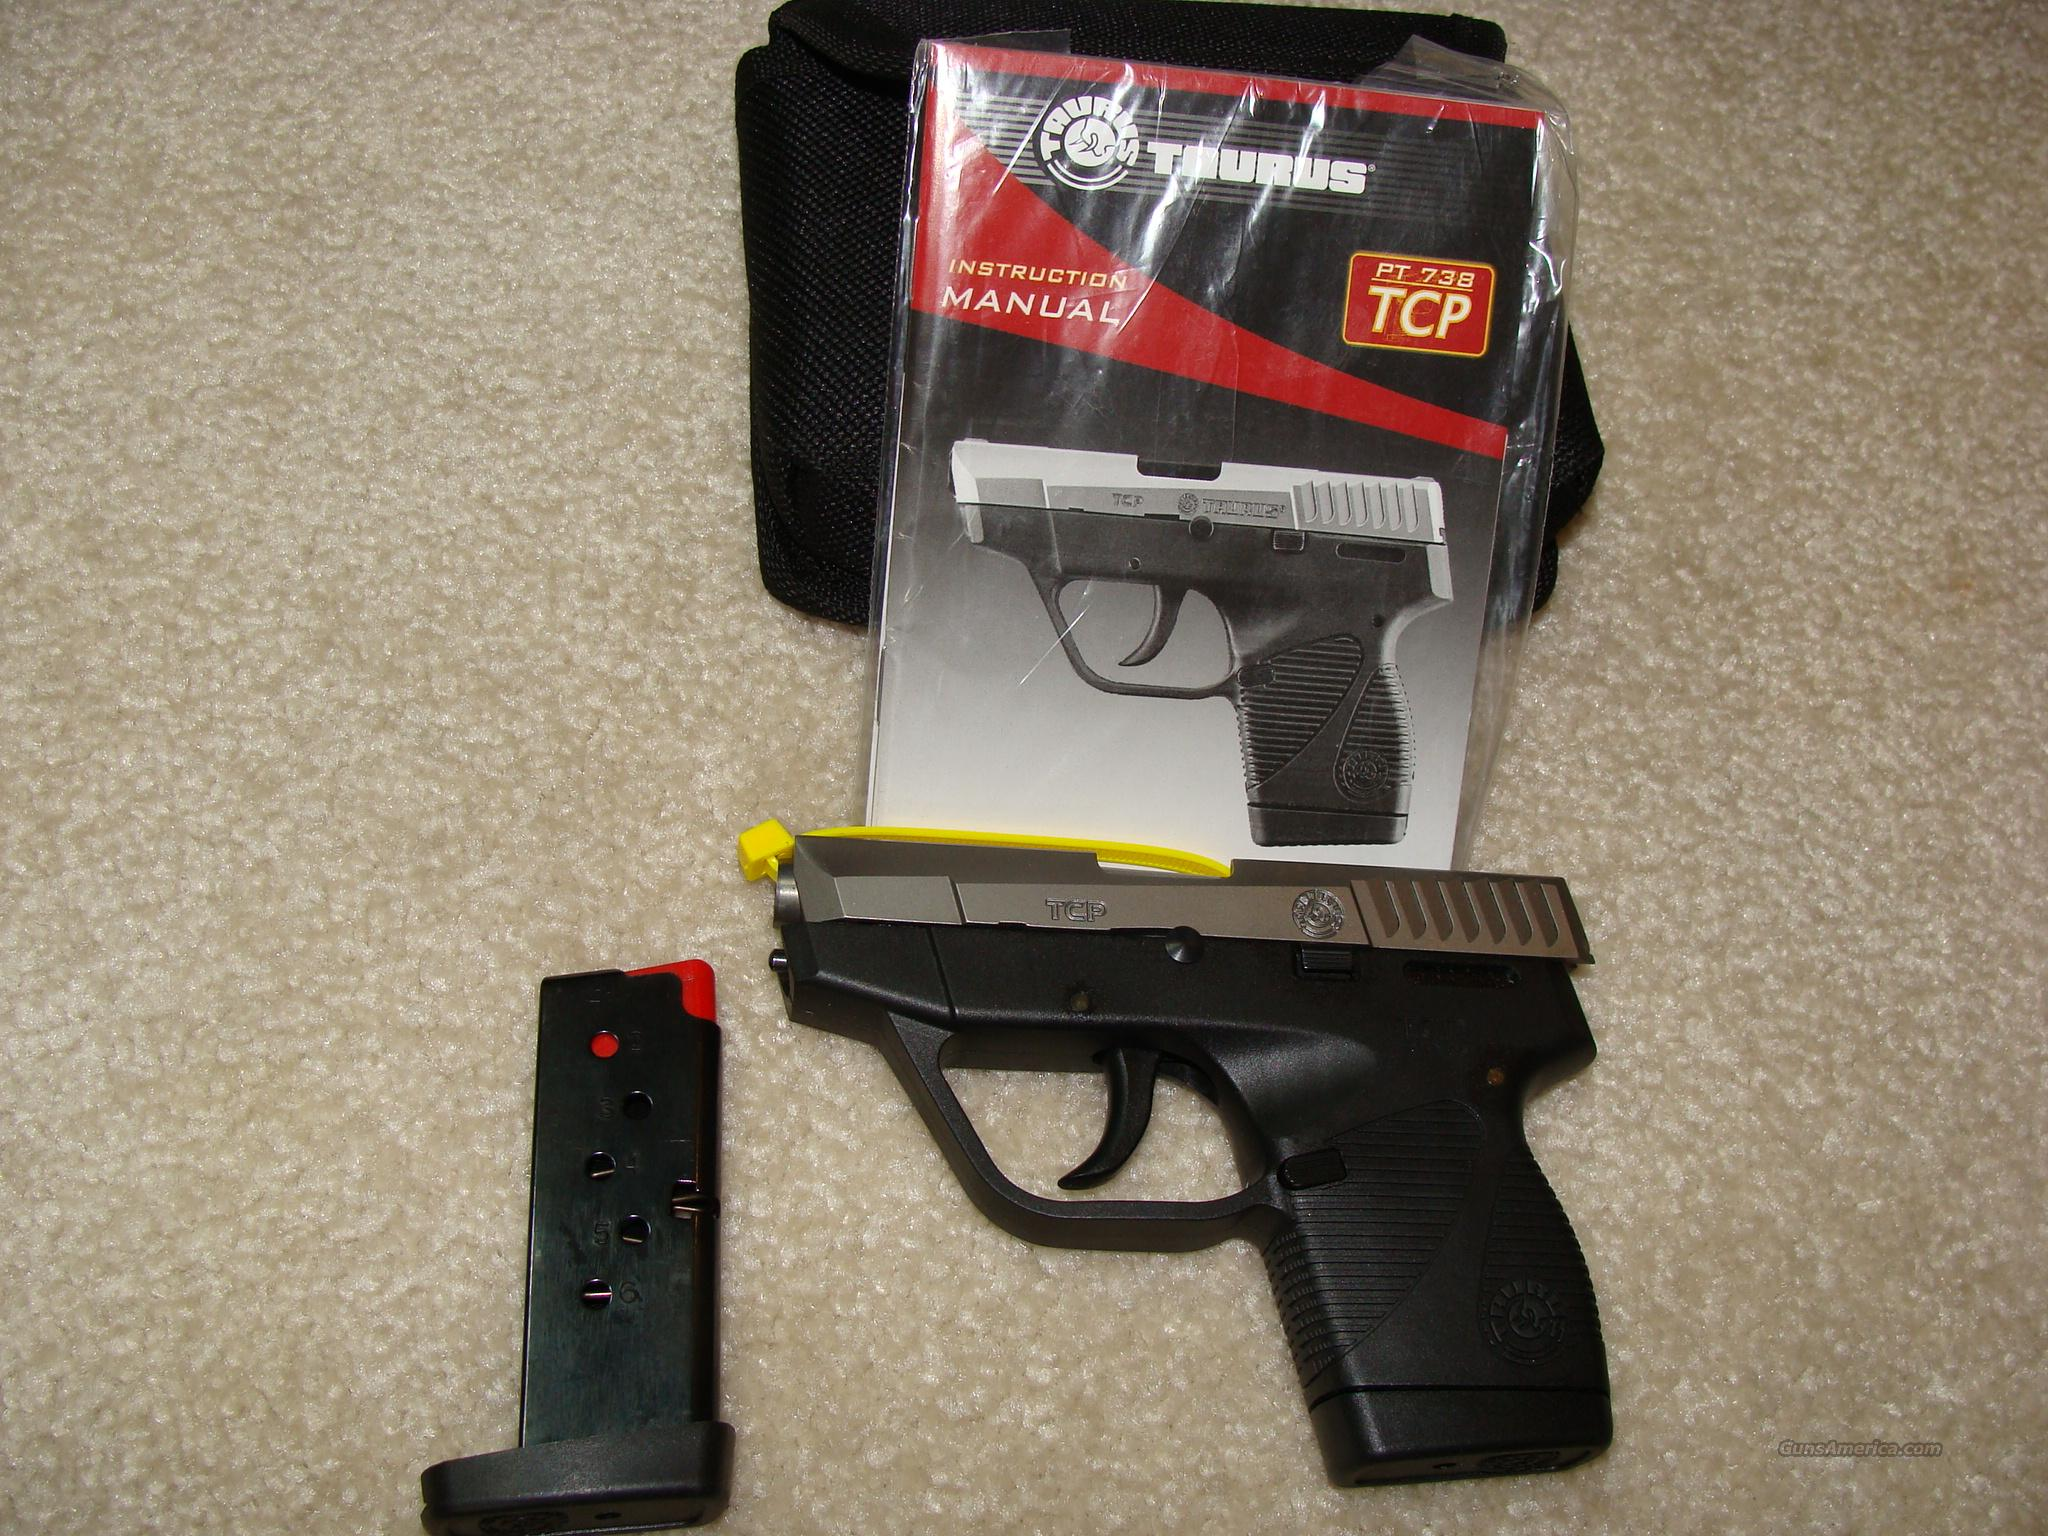 Taurus 738TCP 380 SS New with Davidsons Warranty  Guns > Pistols > Taurus Pistols/Revolvers > Pistols > Polymer Frame